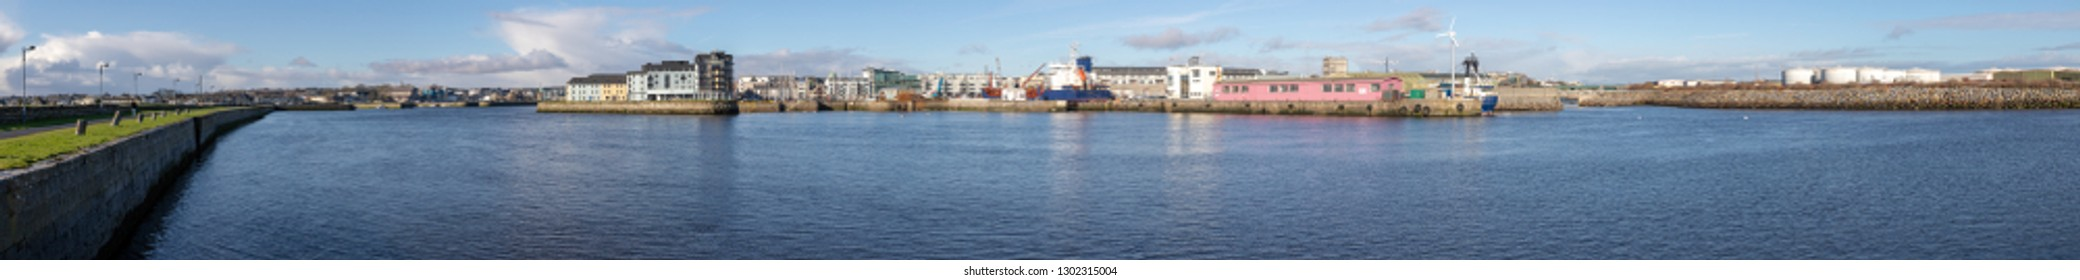 Panorama with Galway harbour, Corrib river and Galway buildings with reflection, Galway, Ireland